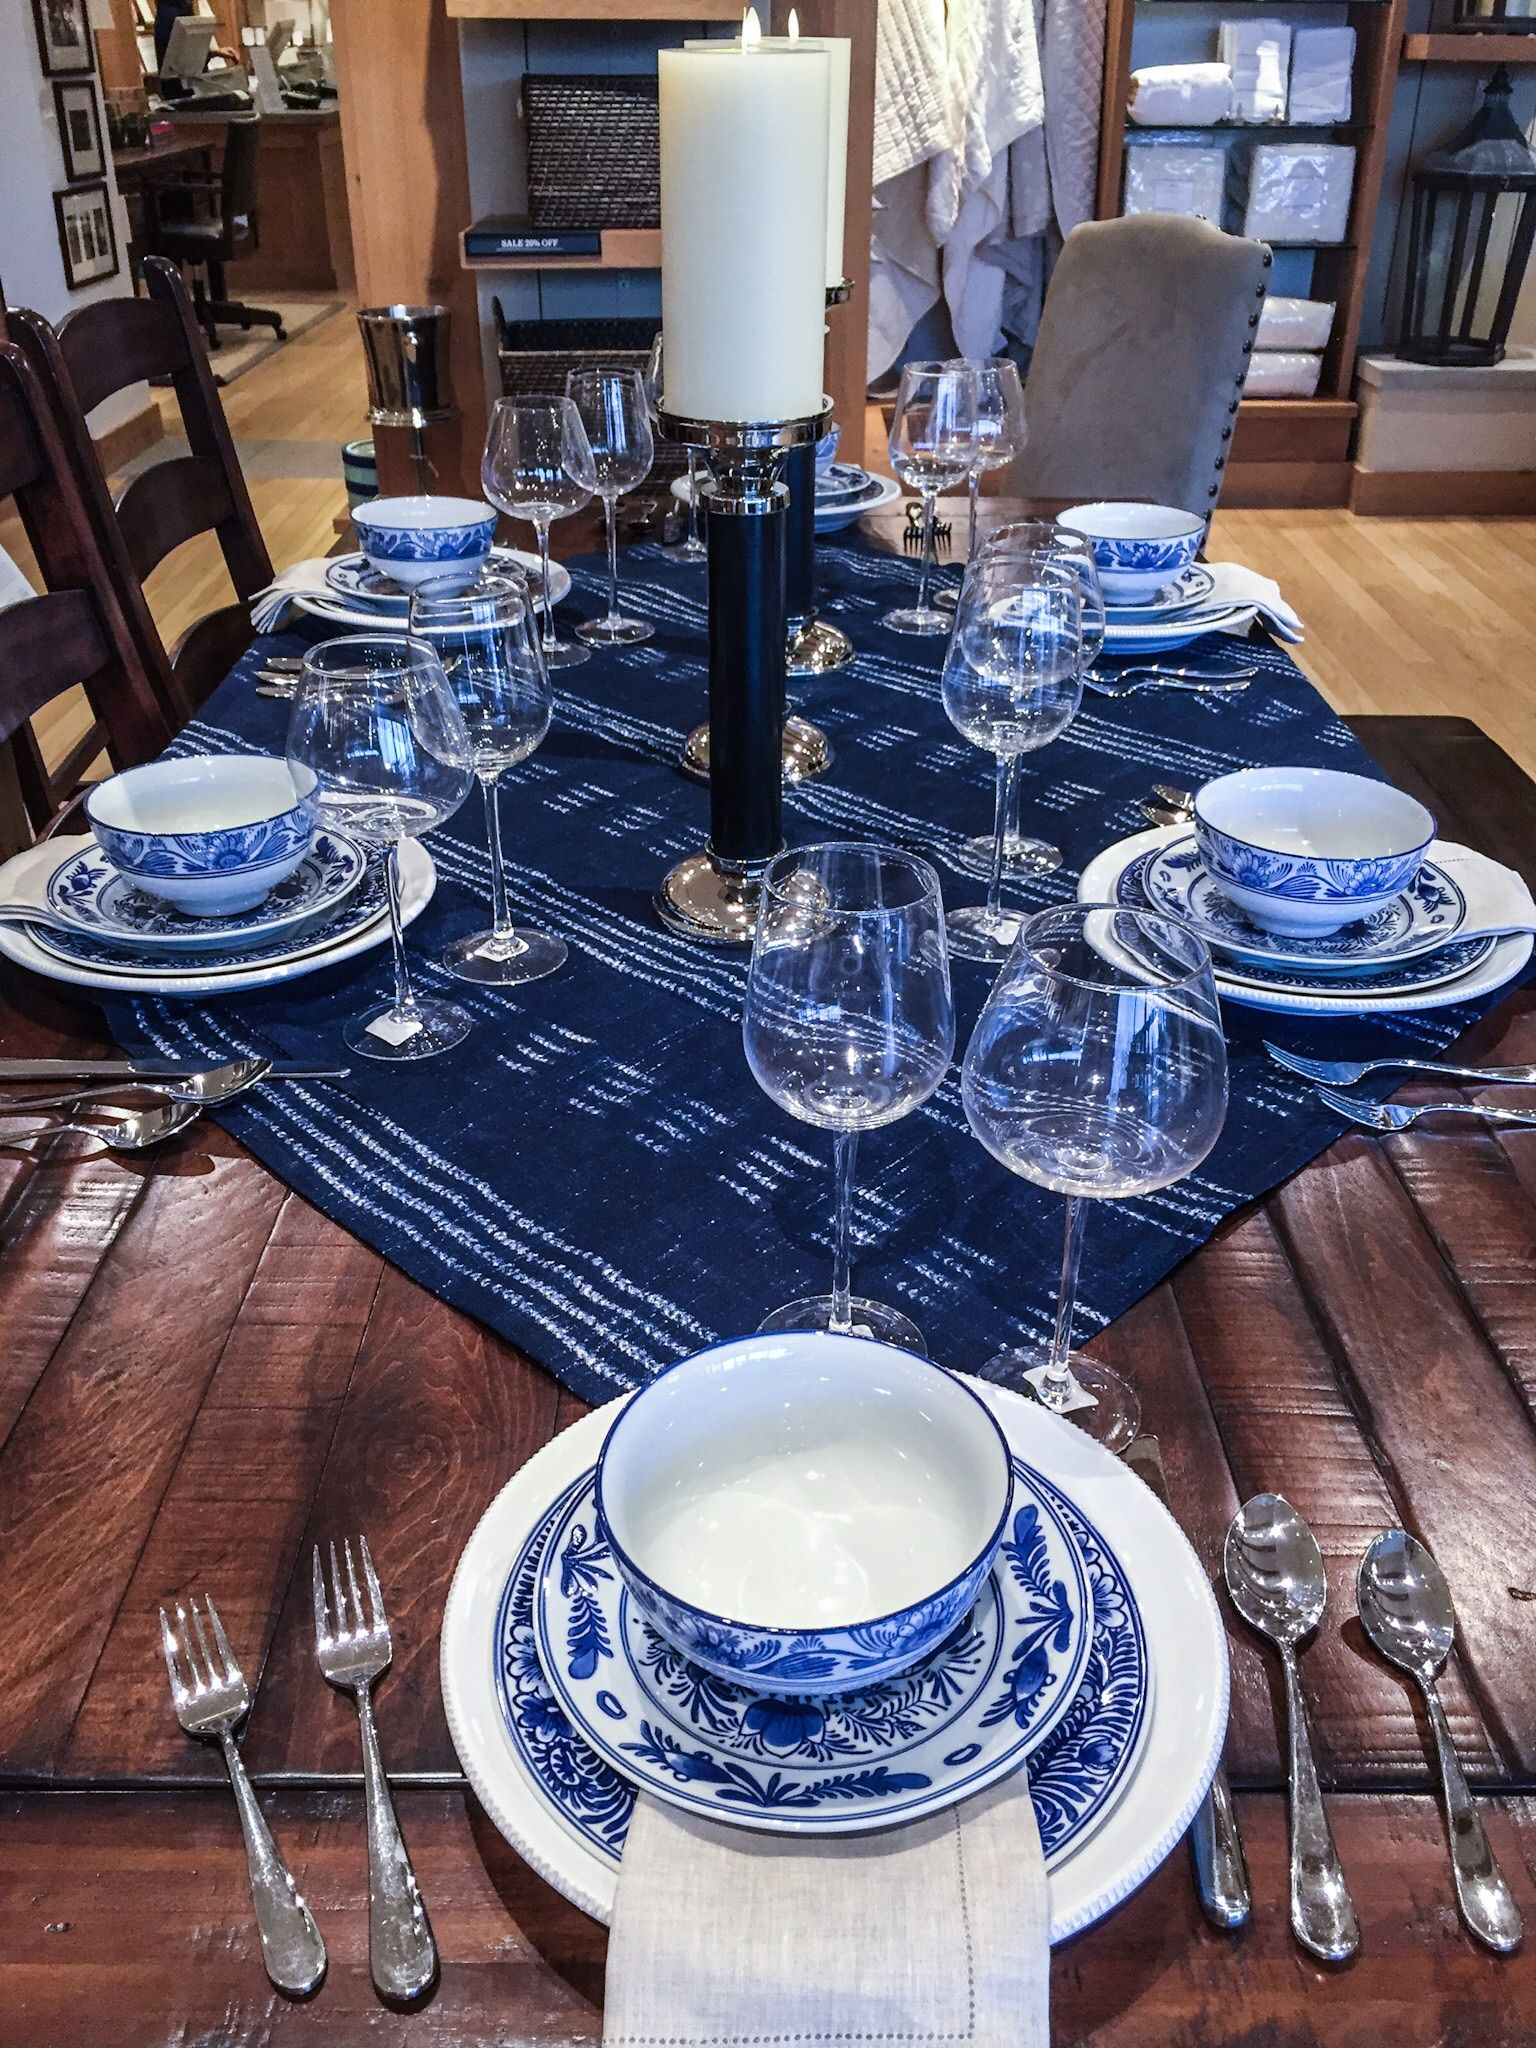 Awesome Ethnic Trending: Hmong Inspired Indigo Table Top @ Pottery Barn.